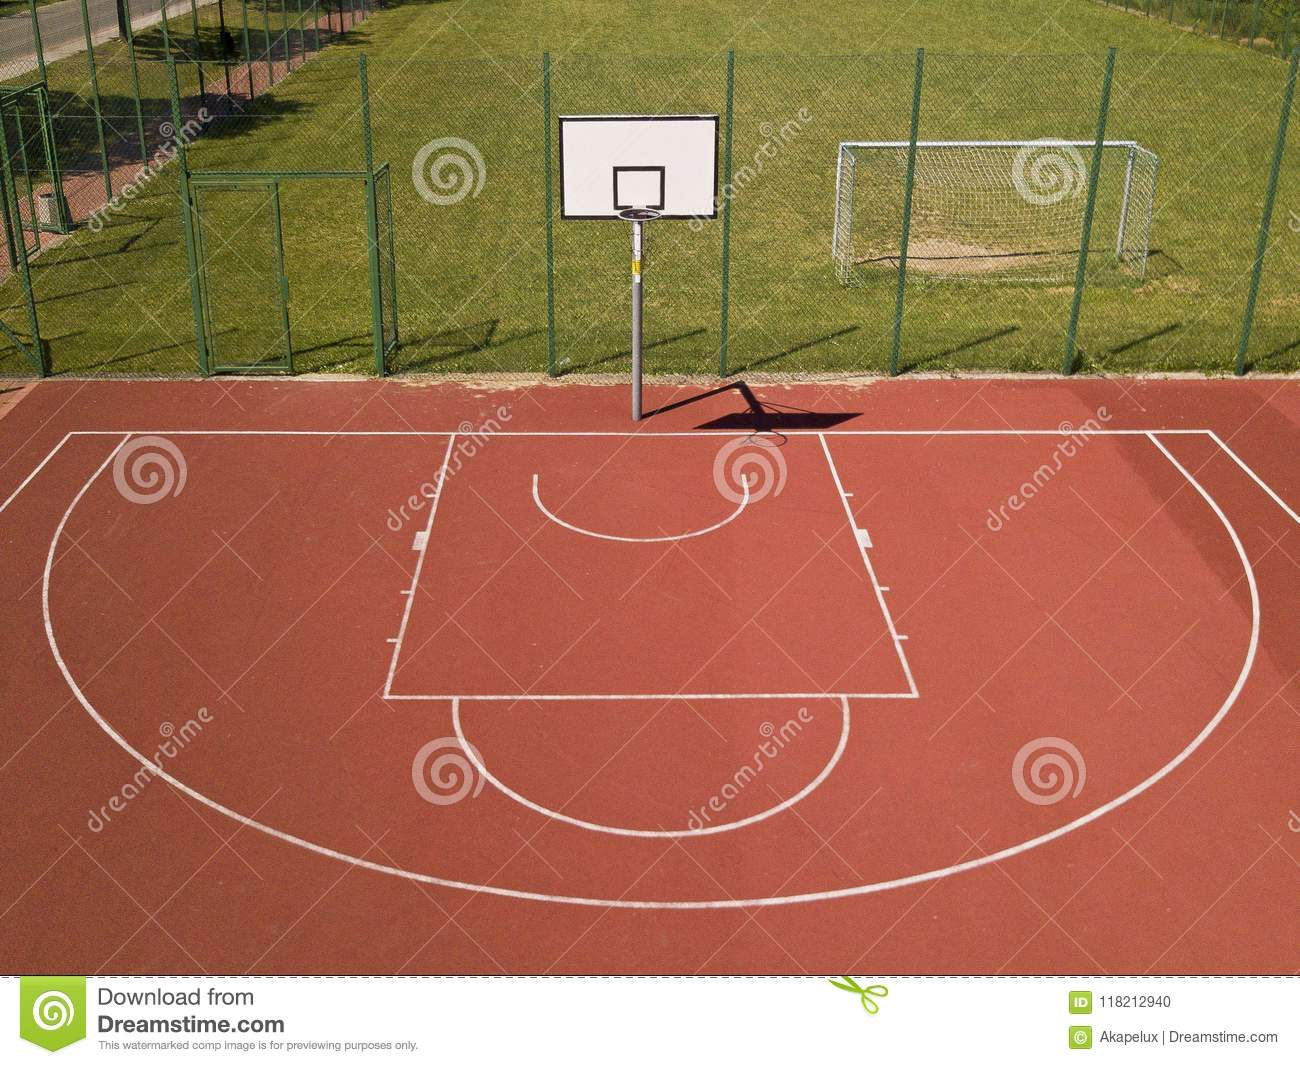 Modern basketball court in the courtyard of primary school. Multifunctional children`s playground with artificial surfaced fenced